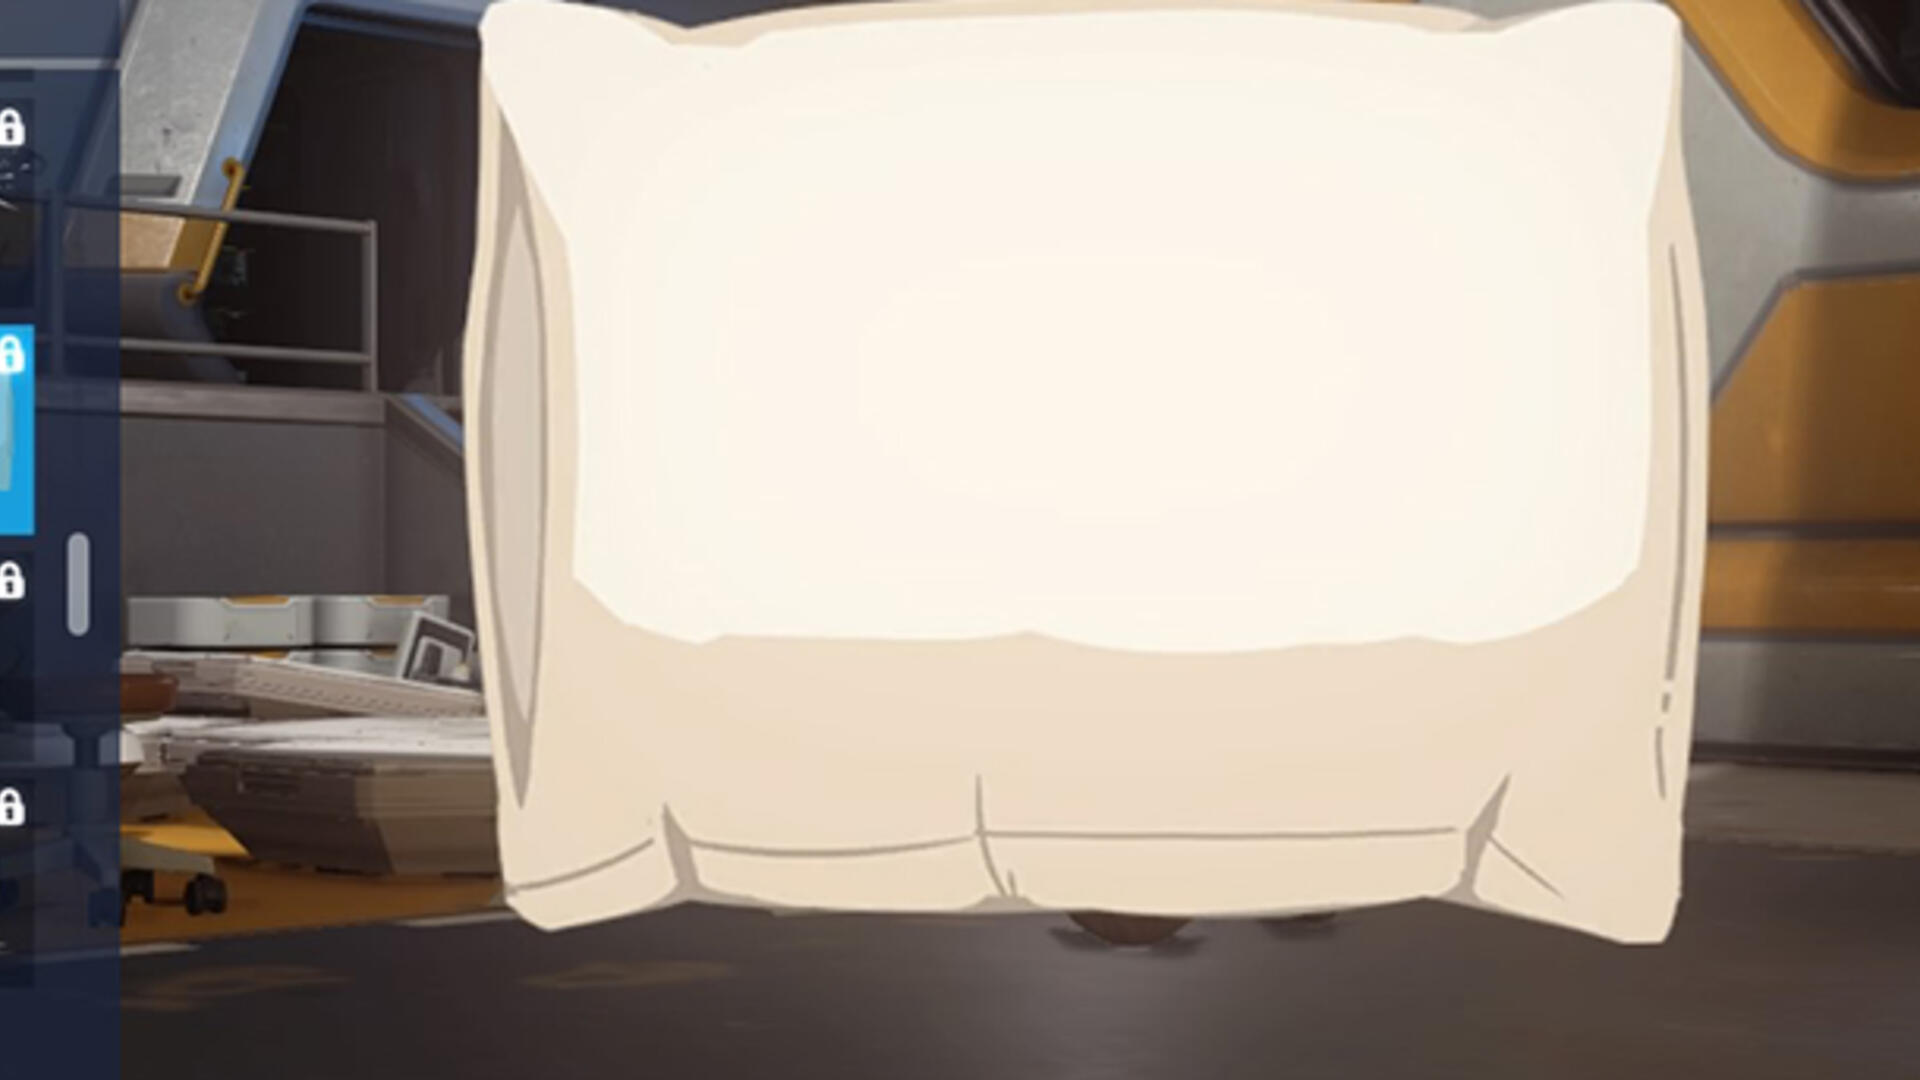 Blizzard Blesses Fans With What They Once Petitioned For: A Pillow Spray for Ana in Overwatch